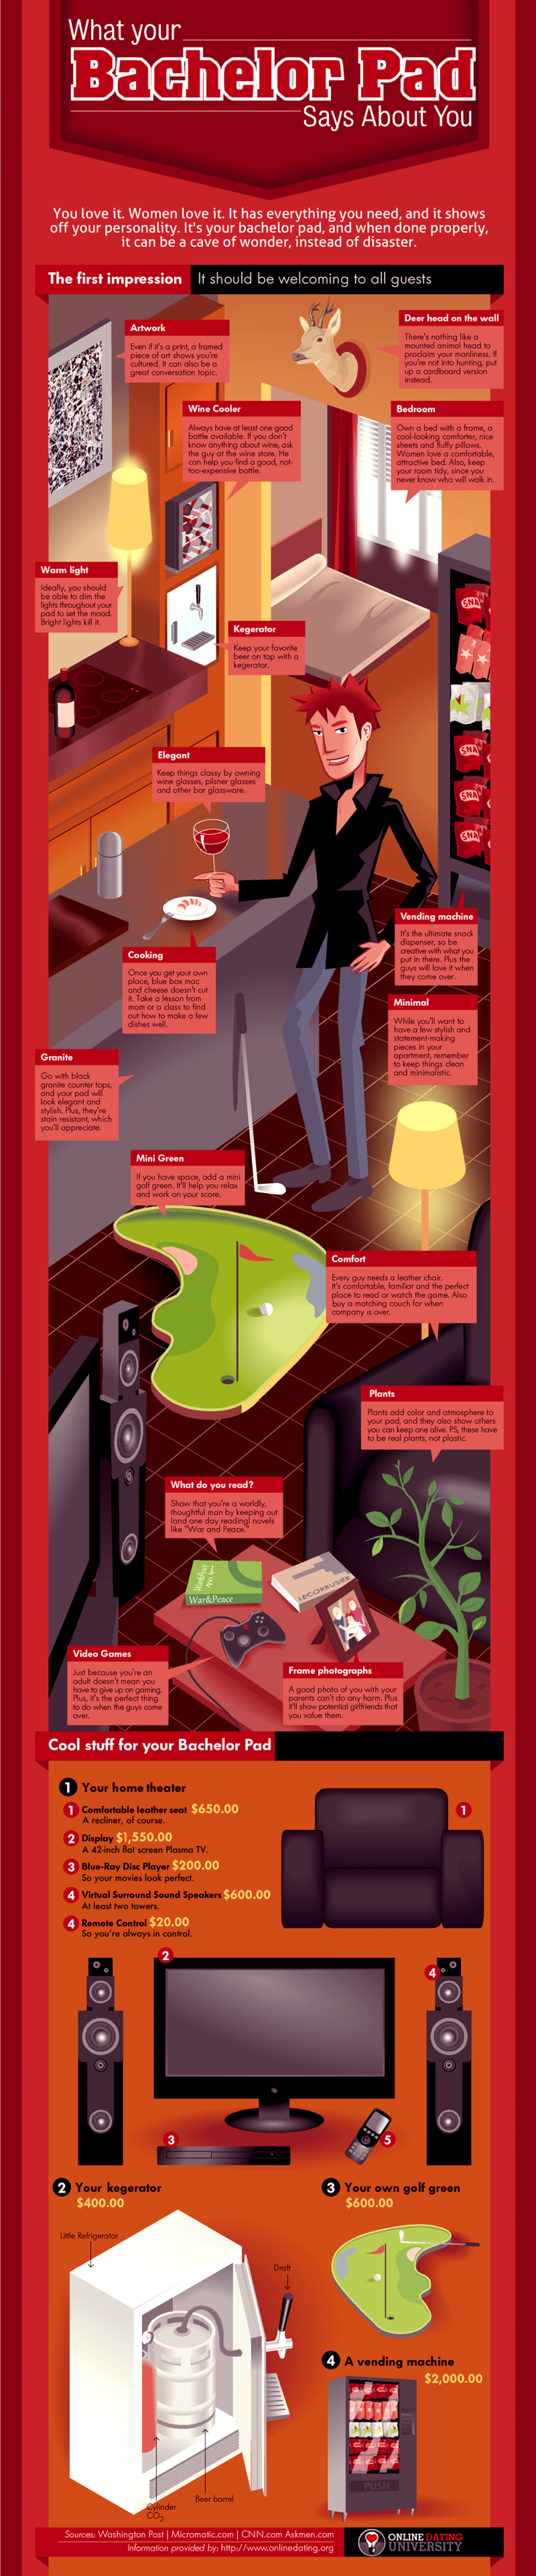 What Your Bachelor Pad Says About You Infographic